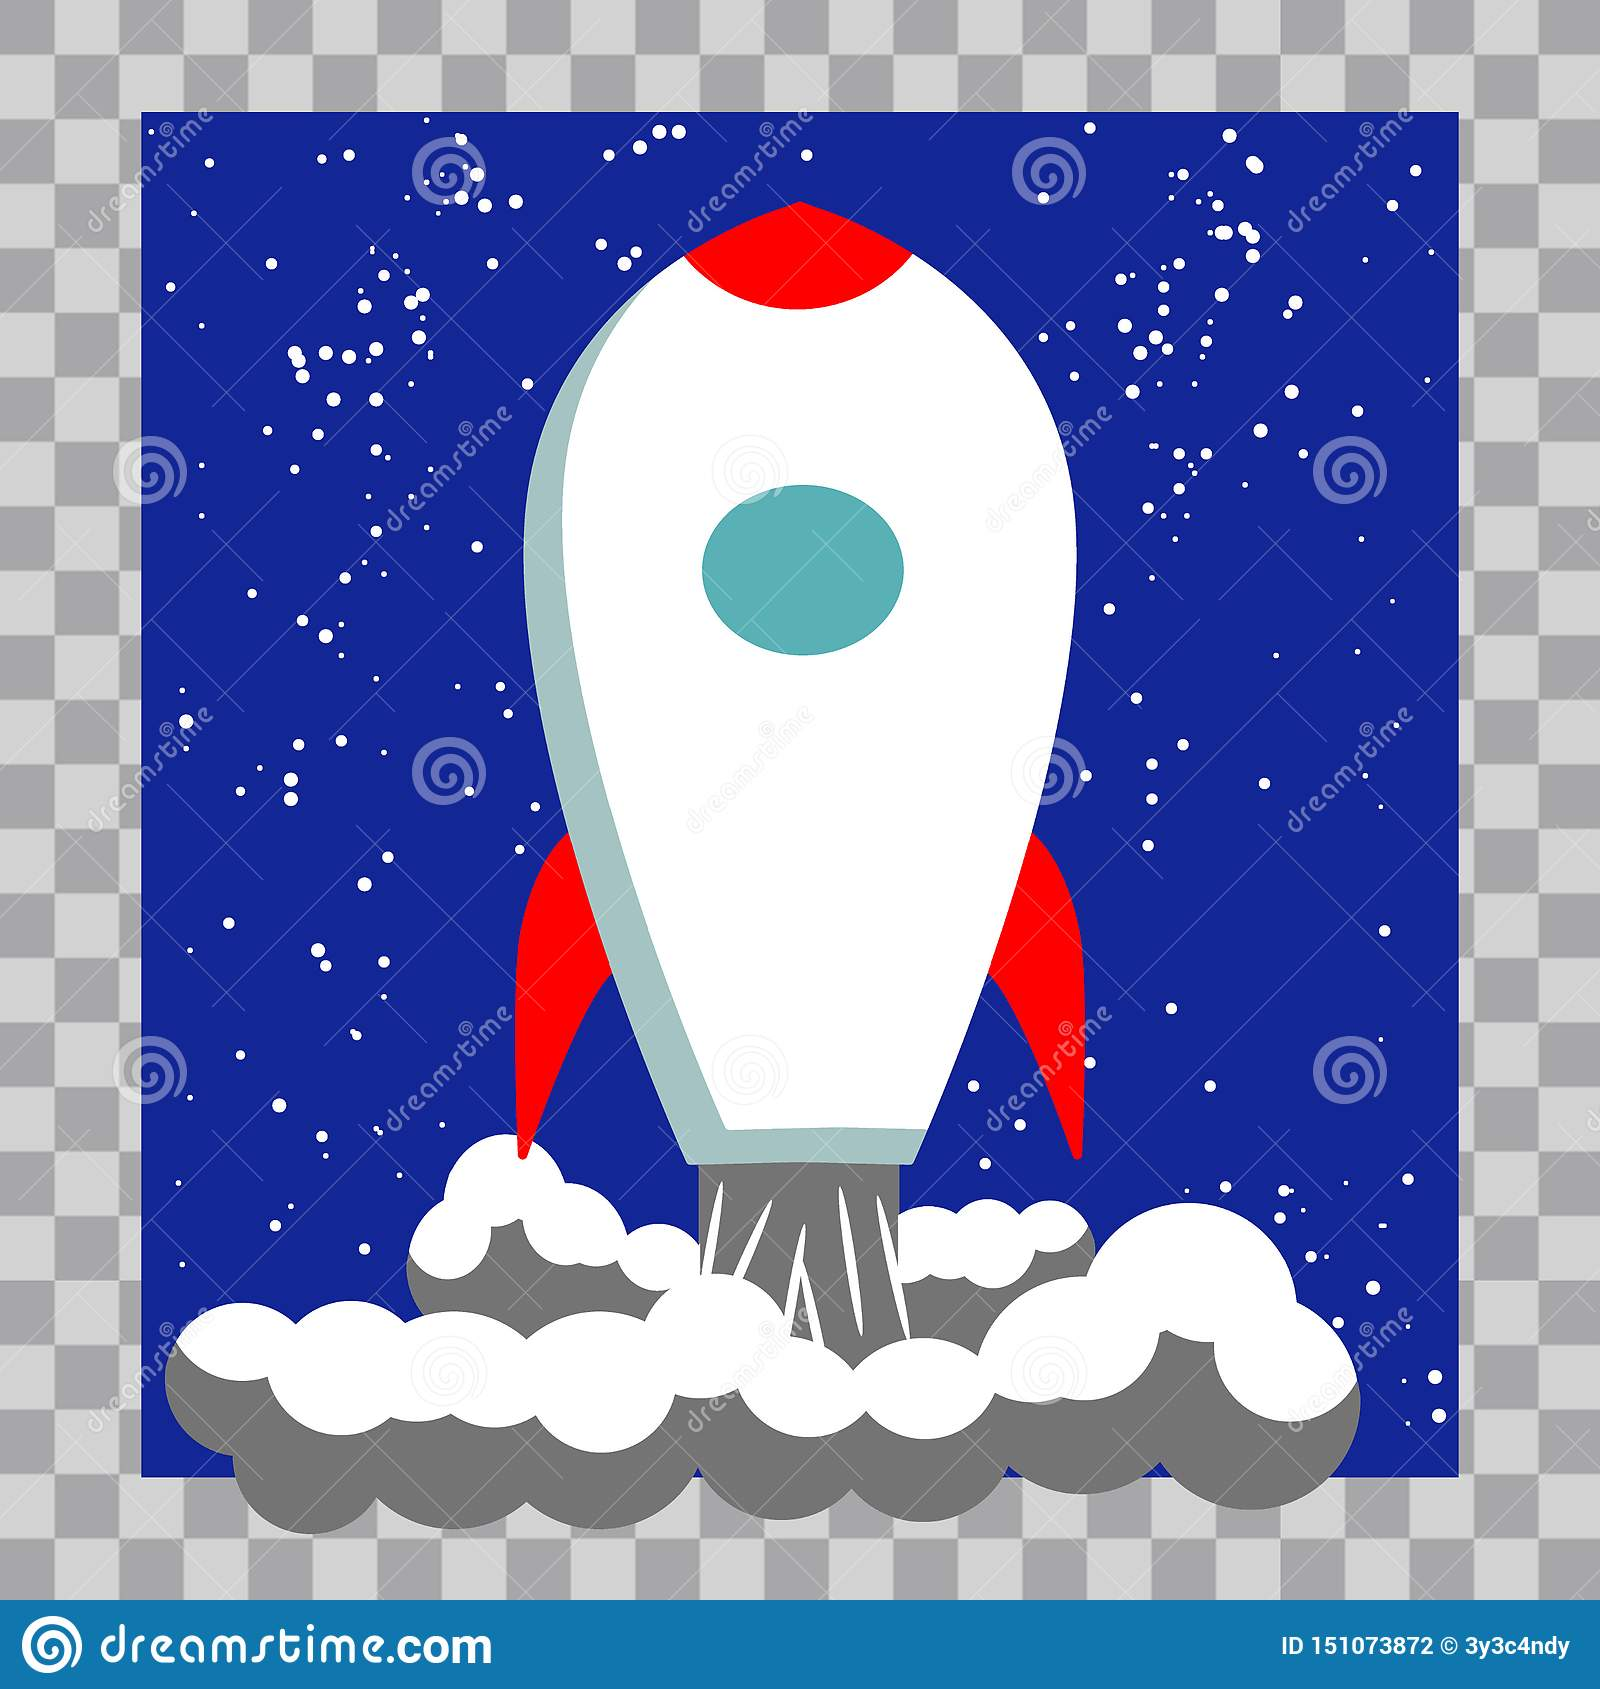 Classic Rocket Space Ship Illustration